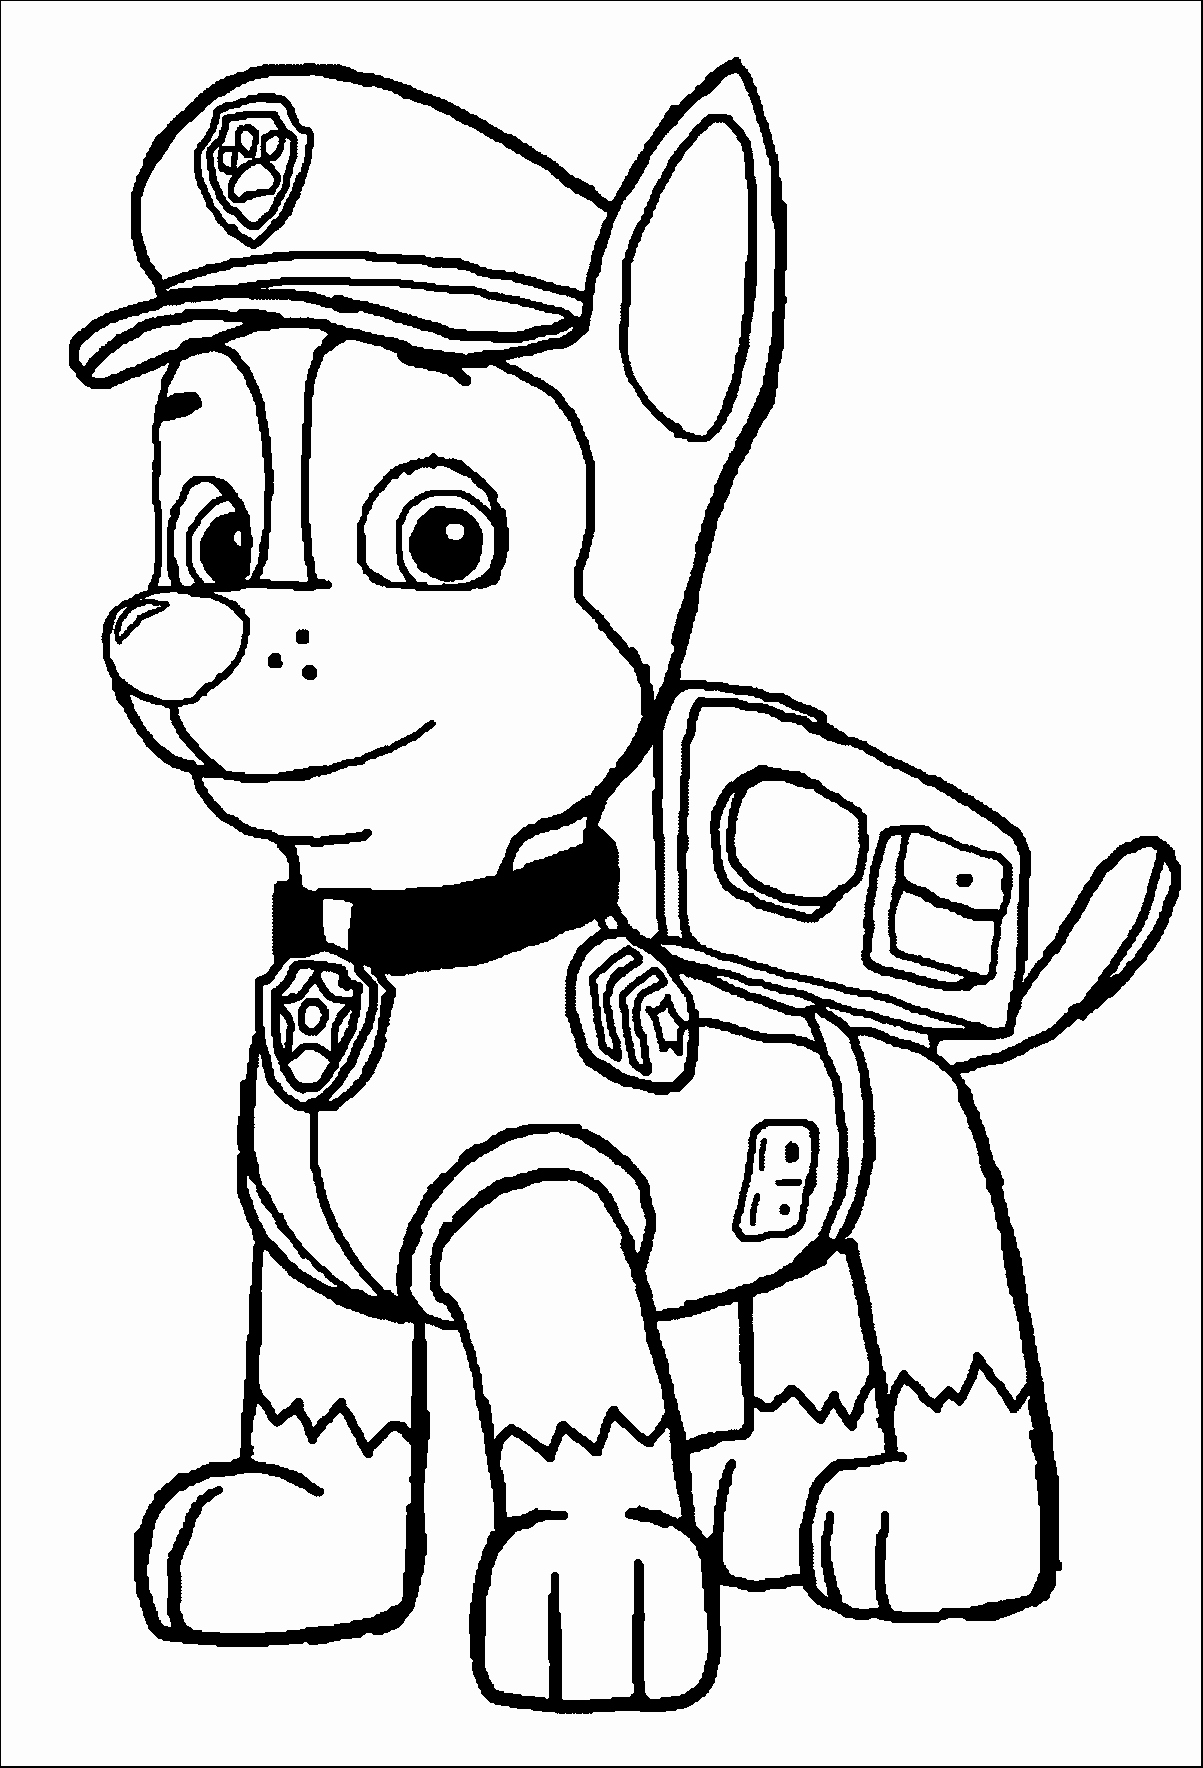 1203x1768 Paw Patrol Coloring Pages Unique Chase Paw Patrol Coloring Page